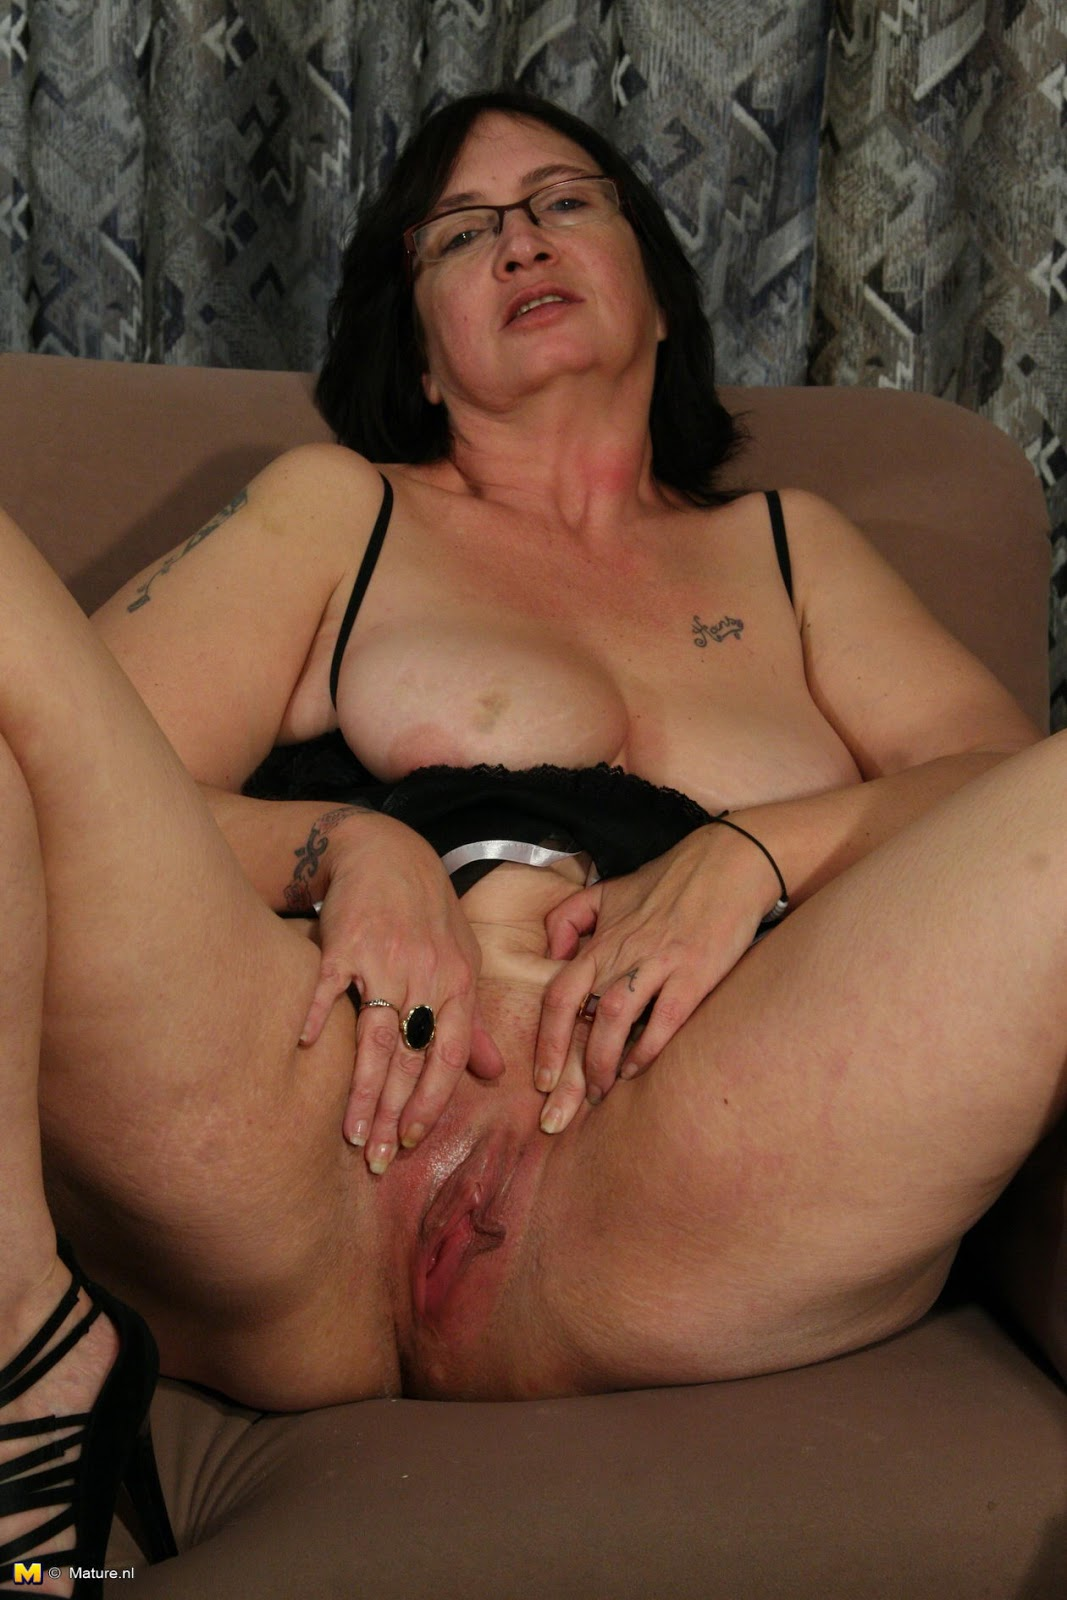 50 yr old uk milf riding her new toy - 1 10